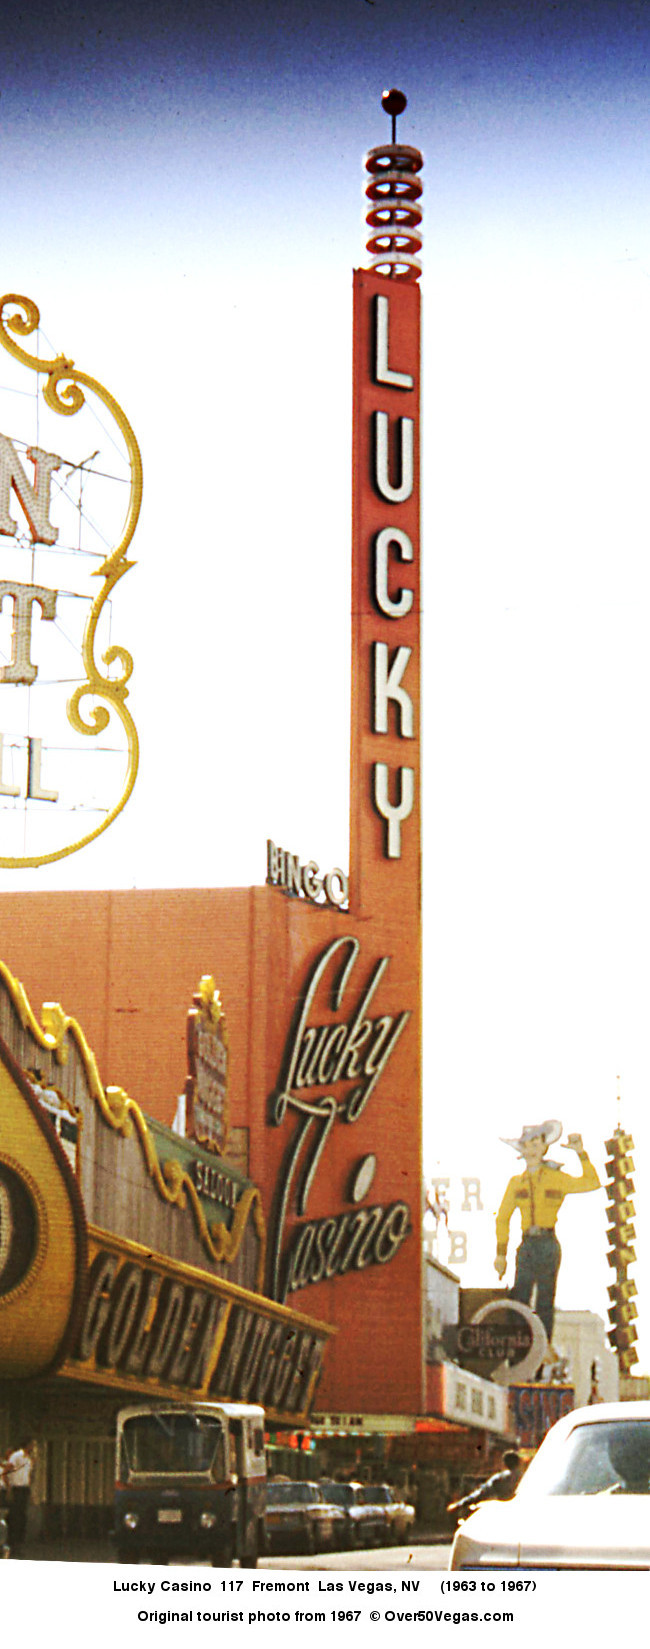 When the Lucky Casino sign  was erected by the Young Electric Sign company in 1963 it weighed in at 60 tons, had three miles of neon tubing, and more than 11,000 lamps.